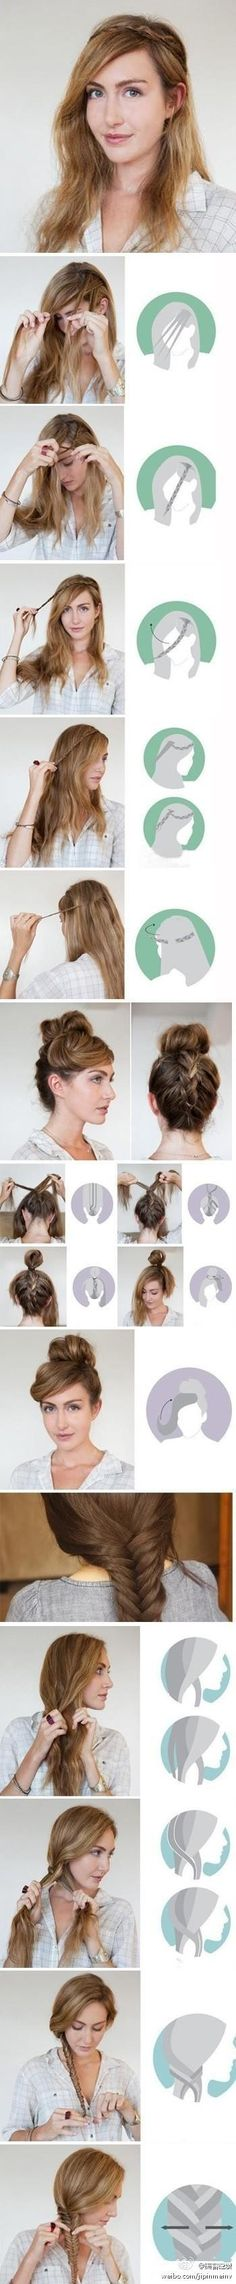 3 inspirations loved it! Popular Hairstyles, Diy Hairstyles, Pretty Hairstyles, Hairdos, Braided Hairstyles Tutorials, Wedding Hairstyles, Diy Braids, Fancy Braids, Fishtail Braids